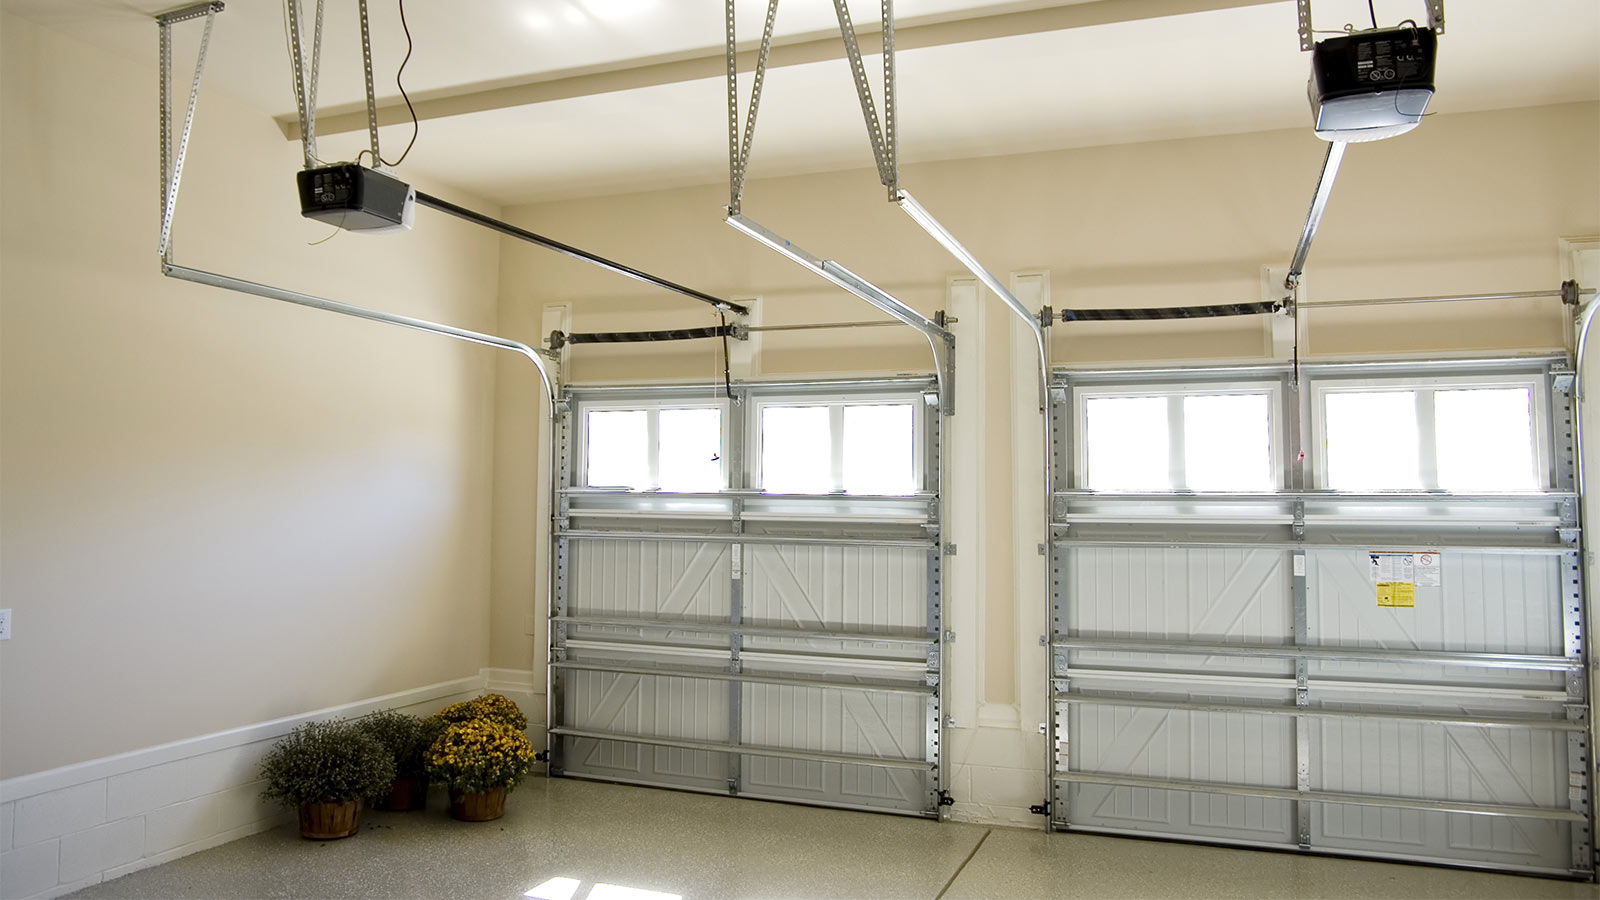 Sectional Garage Doors from Roller Shutter Maintenance Essex & London suppliers.